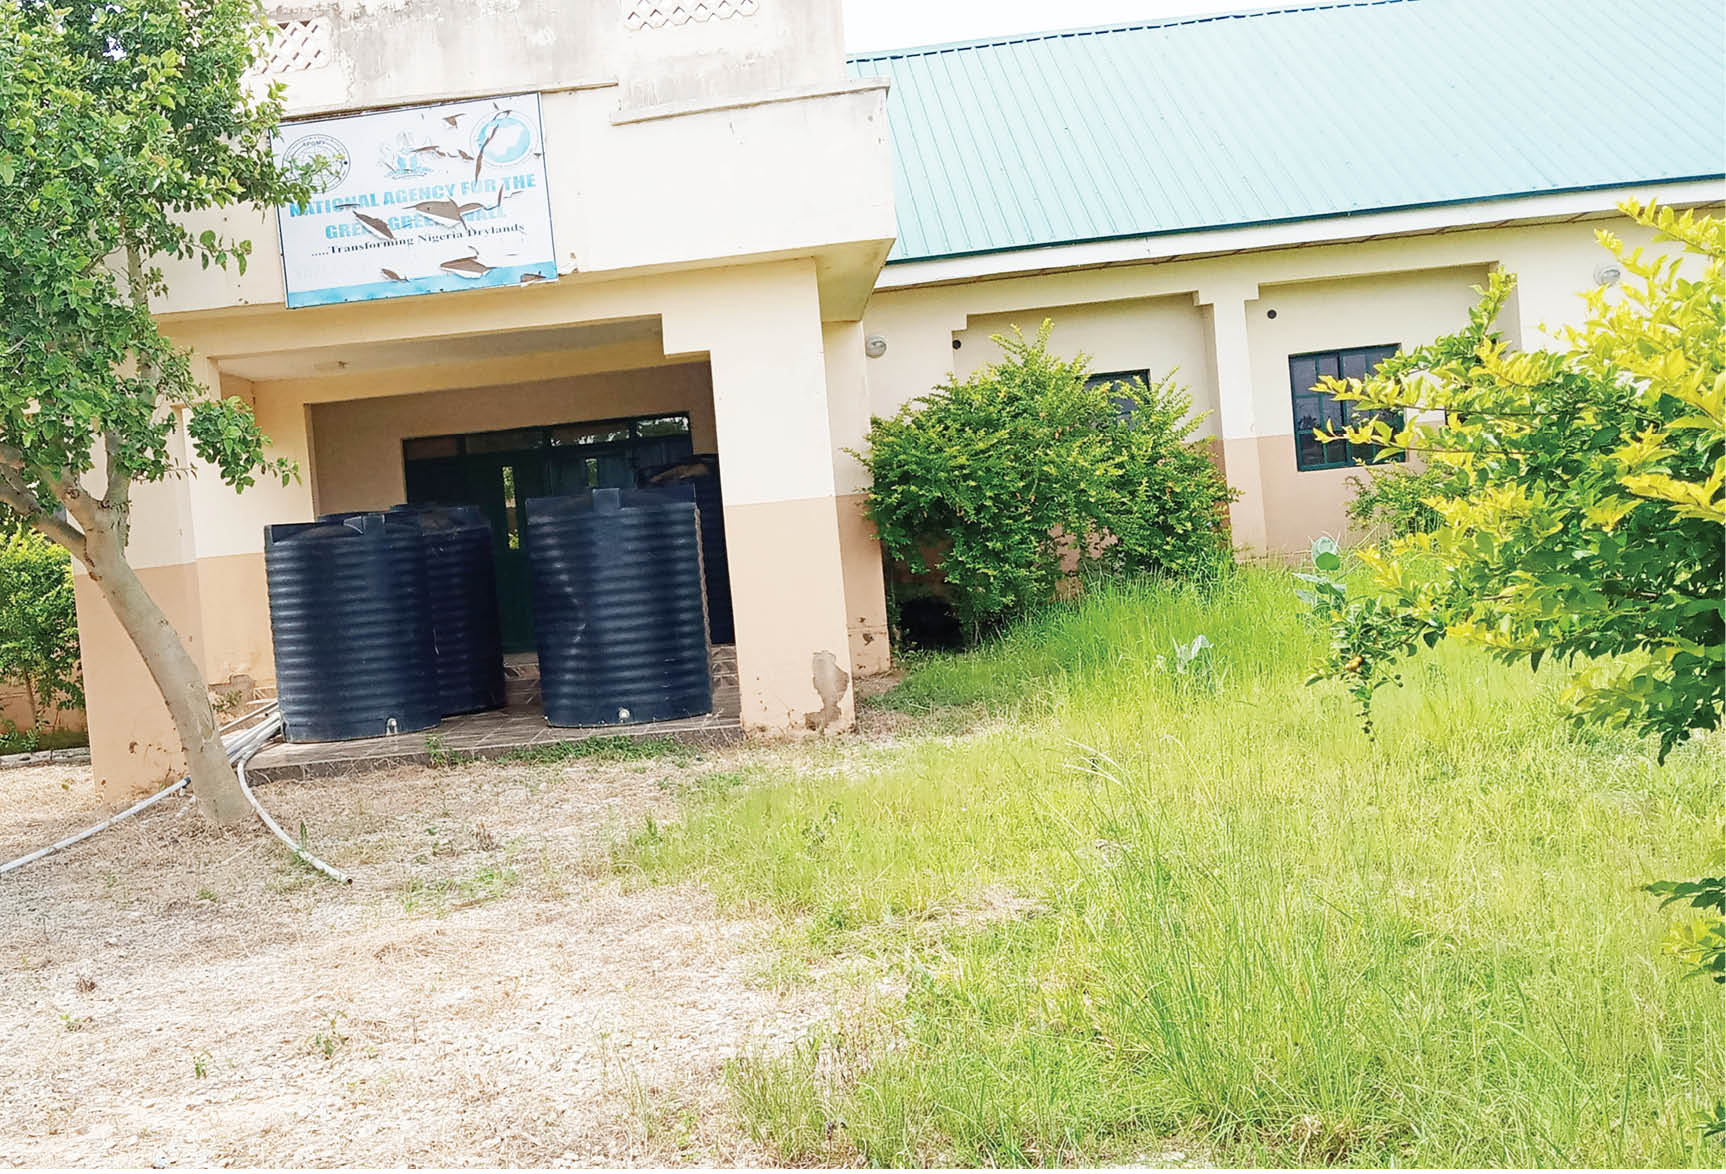 Abandoned GGW Skills Acquisation Centre in Chinade town in Bauchi State